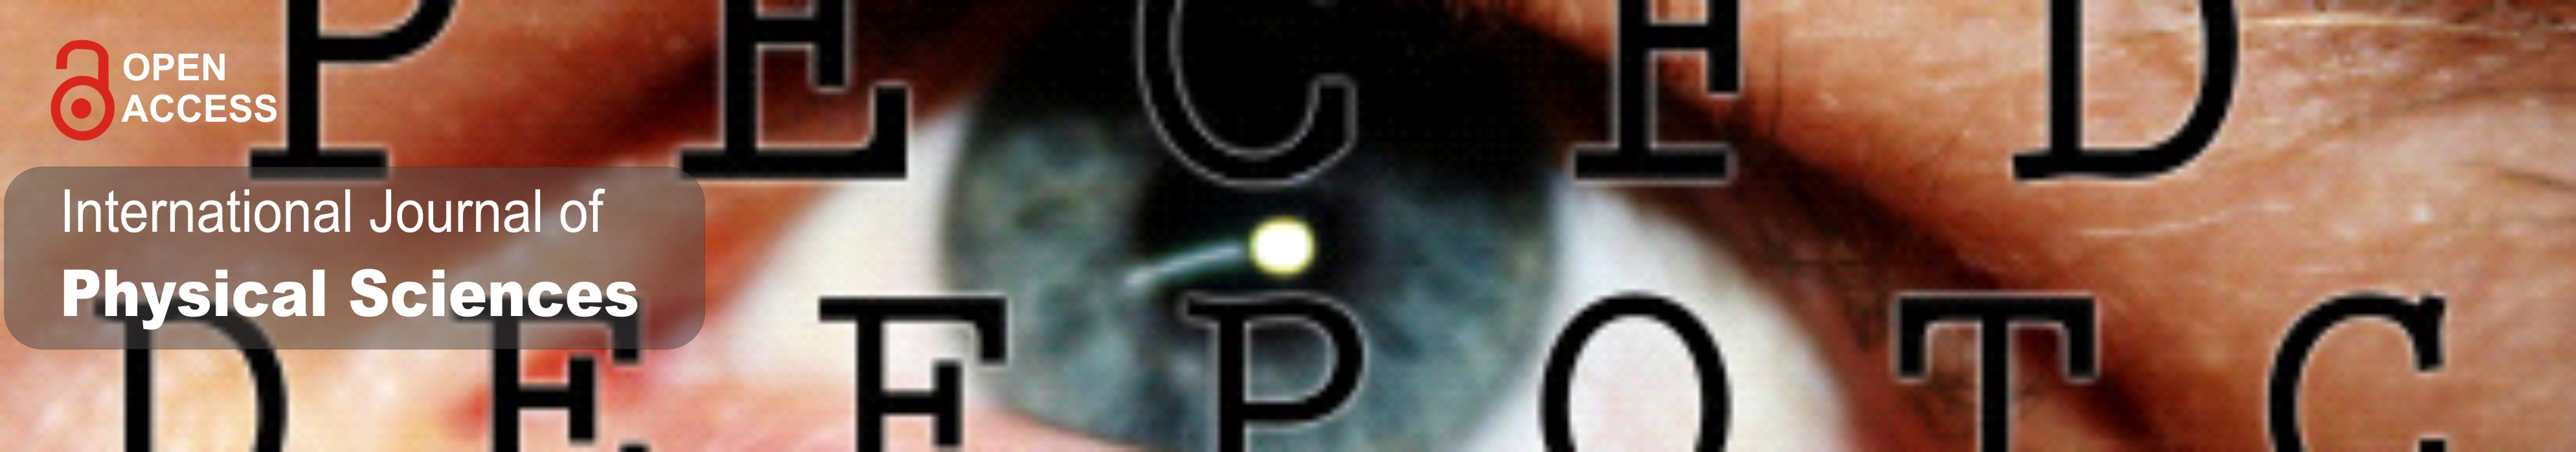 International Journal of Physical Sciences